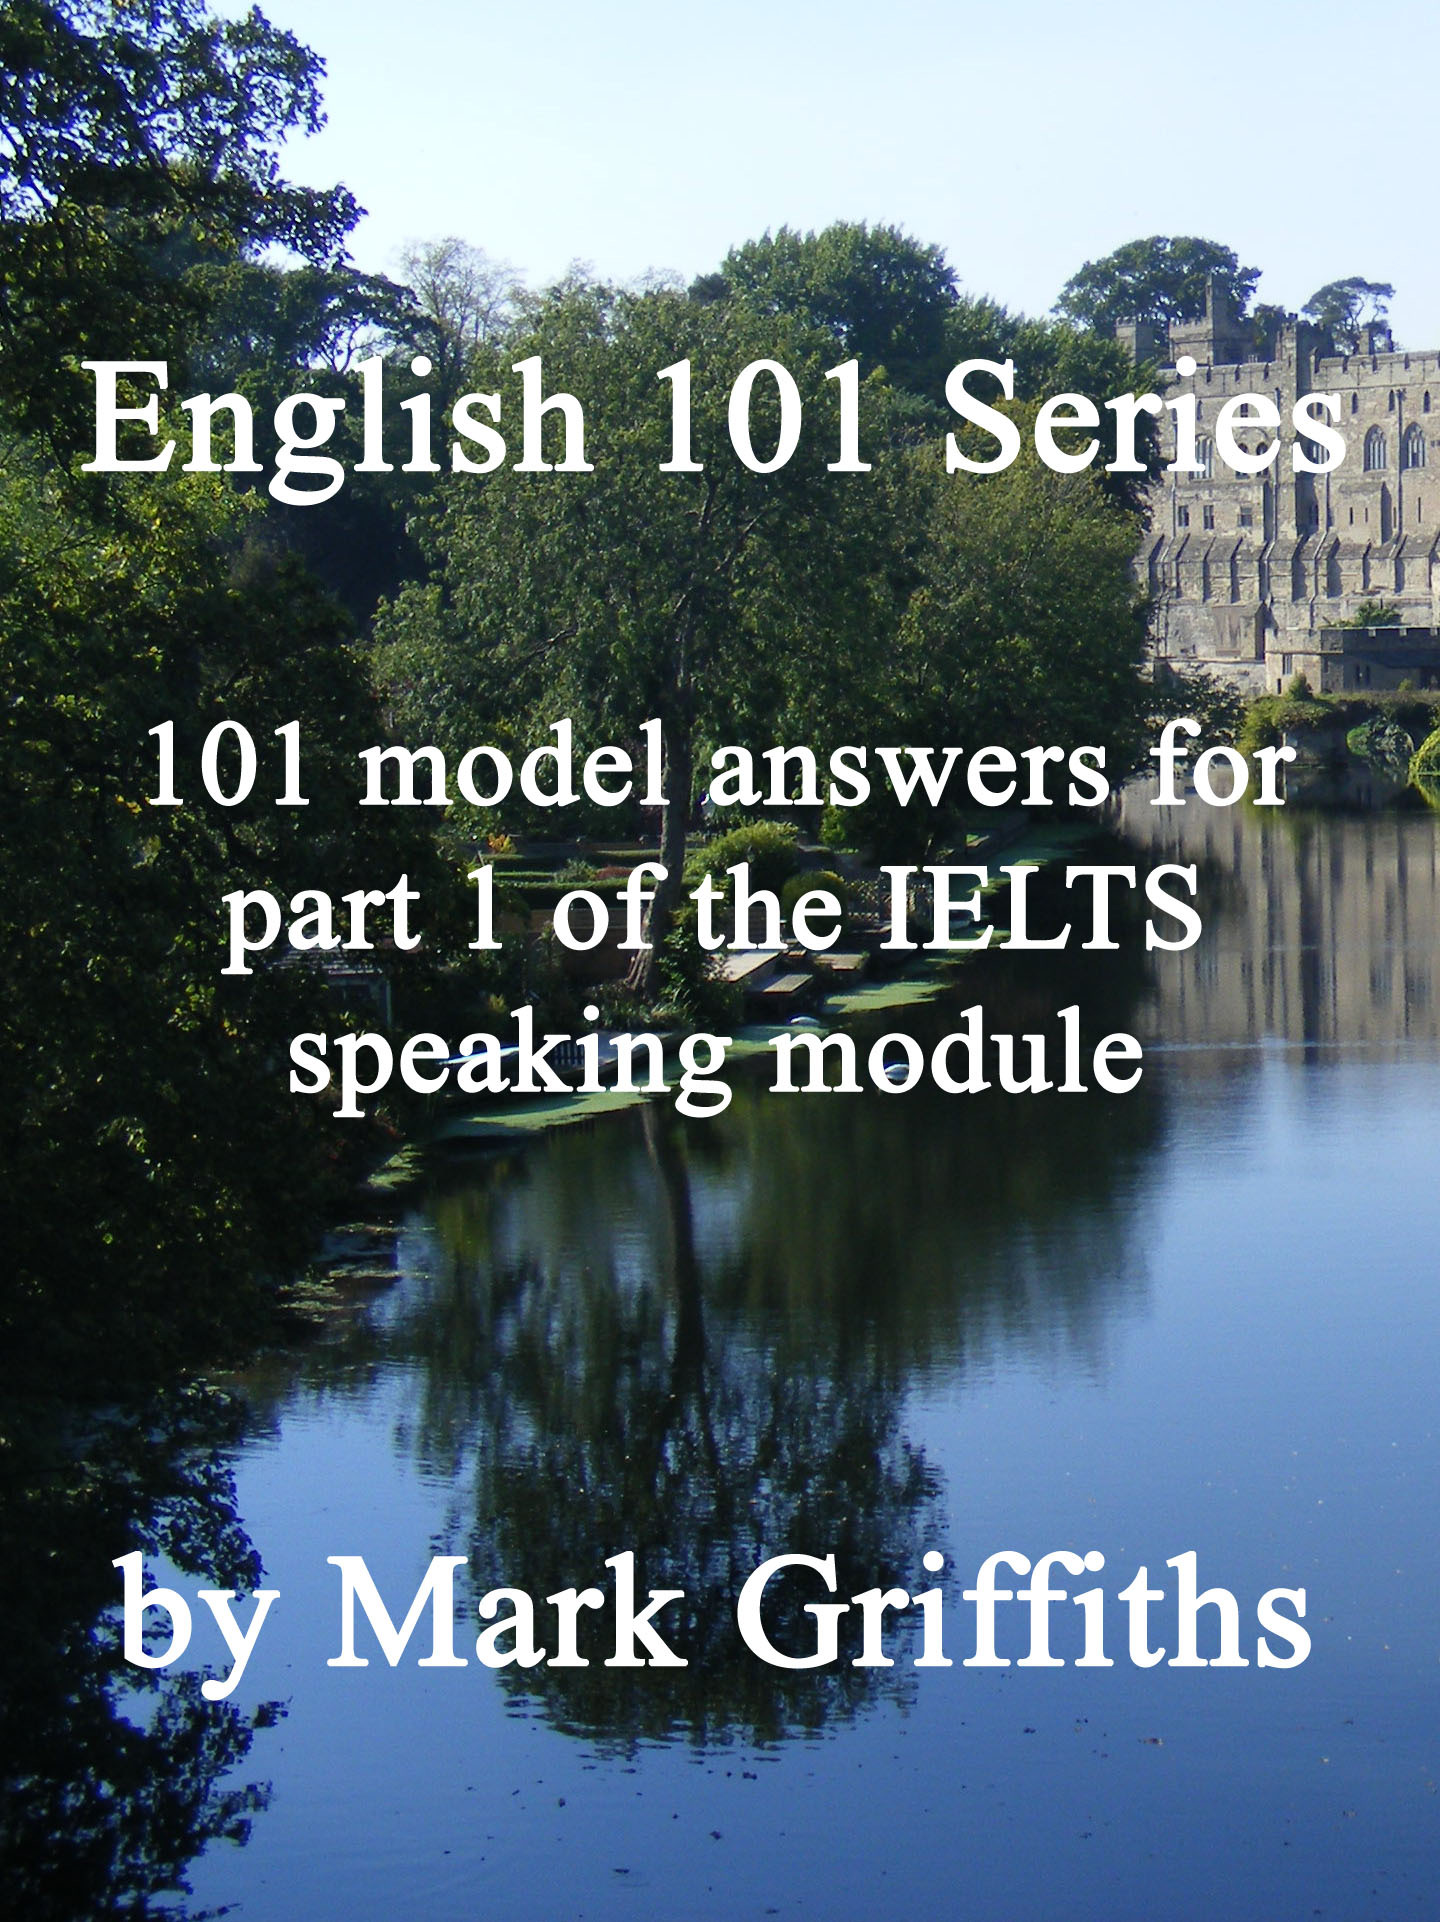 English 101 Series: 101 model answers for part 1 of the IELTS speaking module